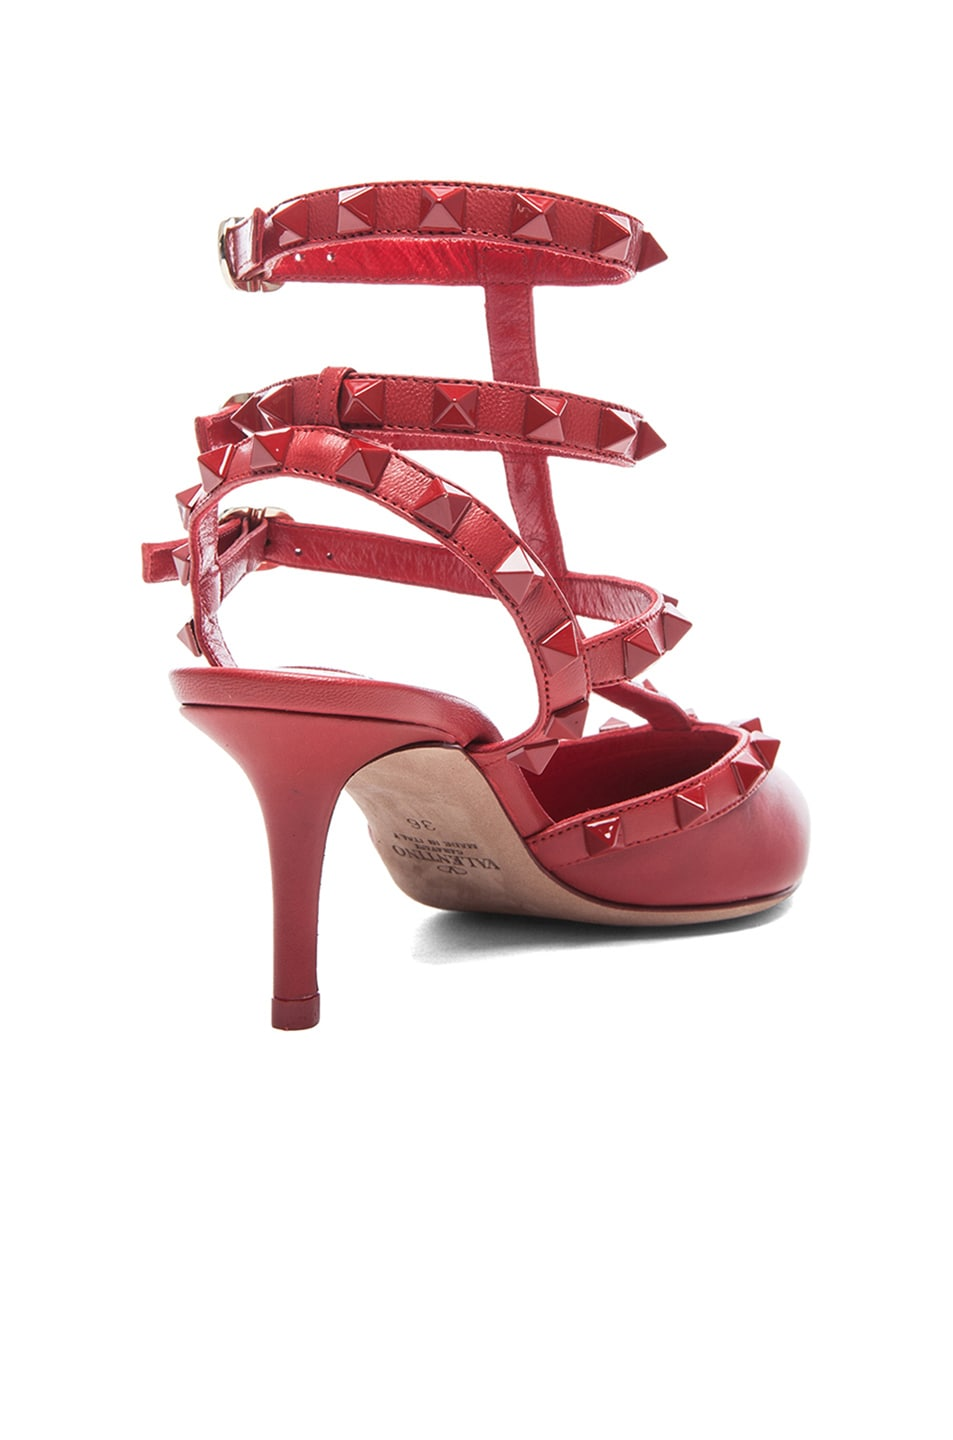 Image 3 of Valentino Rouge Rockstud Leather Slingbacks T.65 in Rosso Red